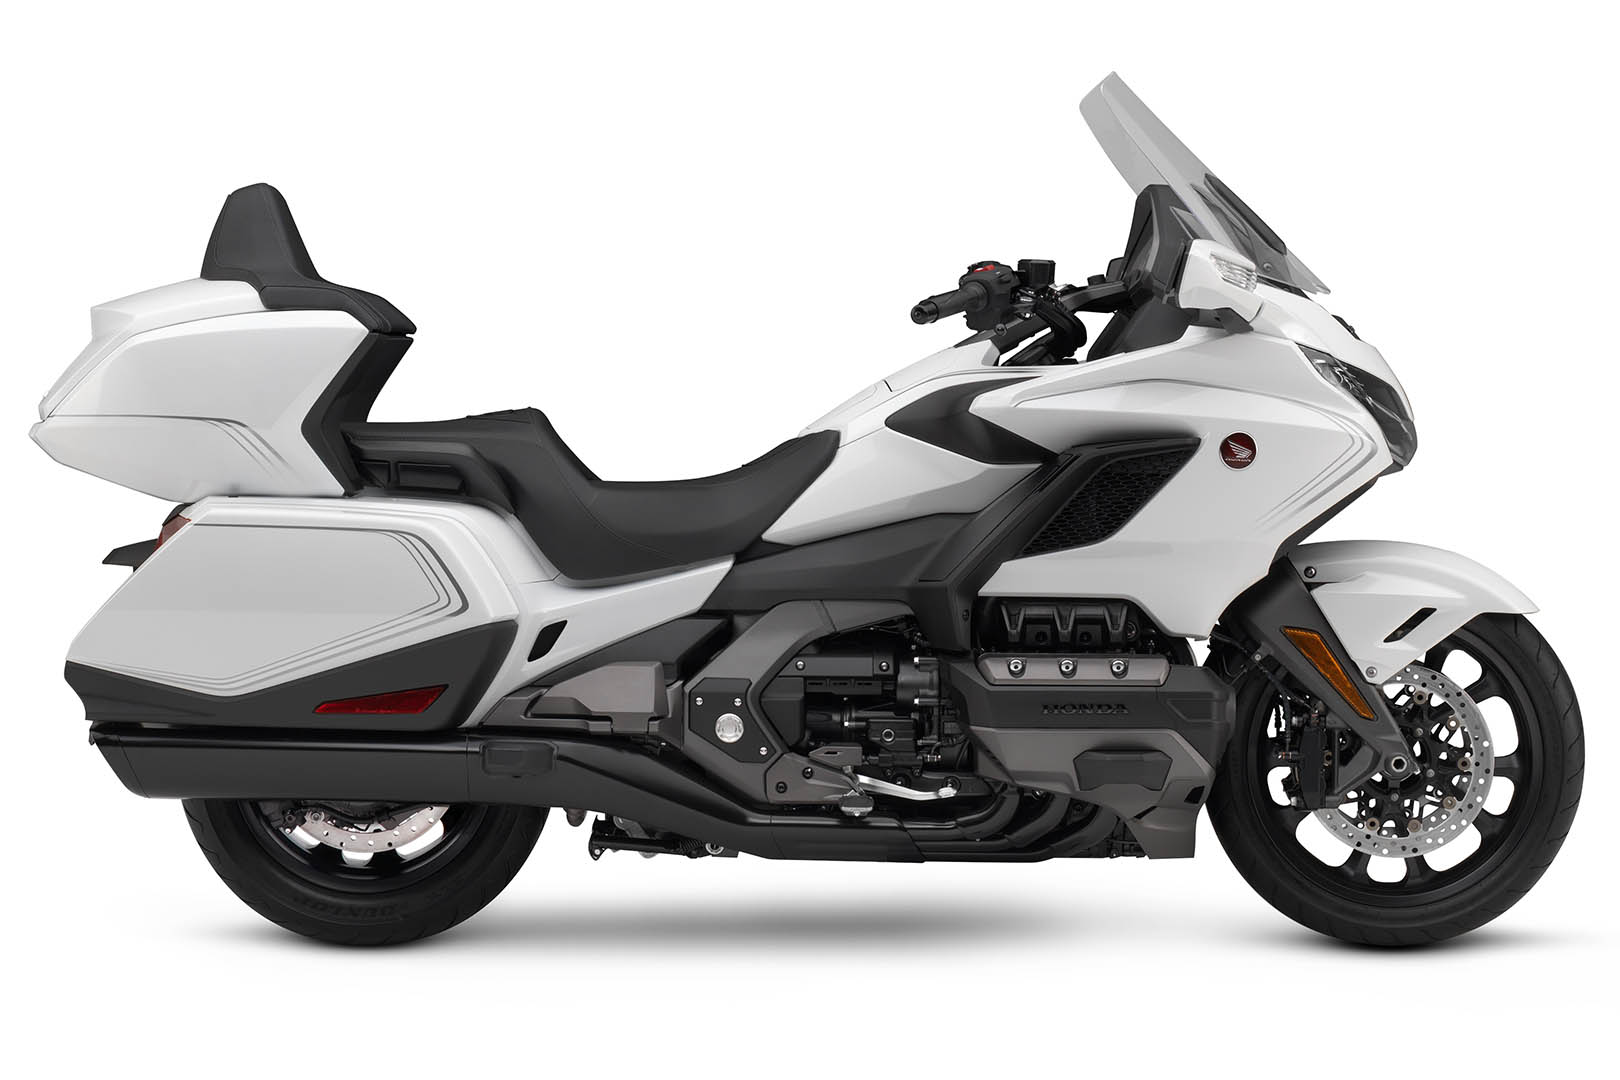 2020 Honda Gold Wing Tour Buyers Guide - luxury touring motorcycle